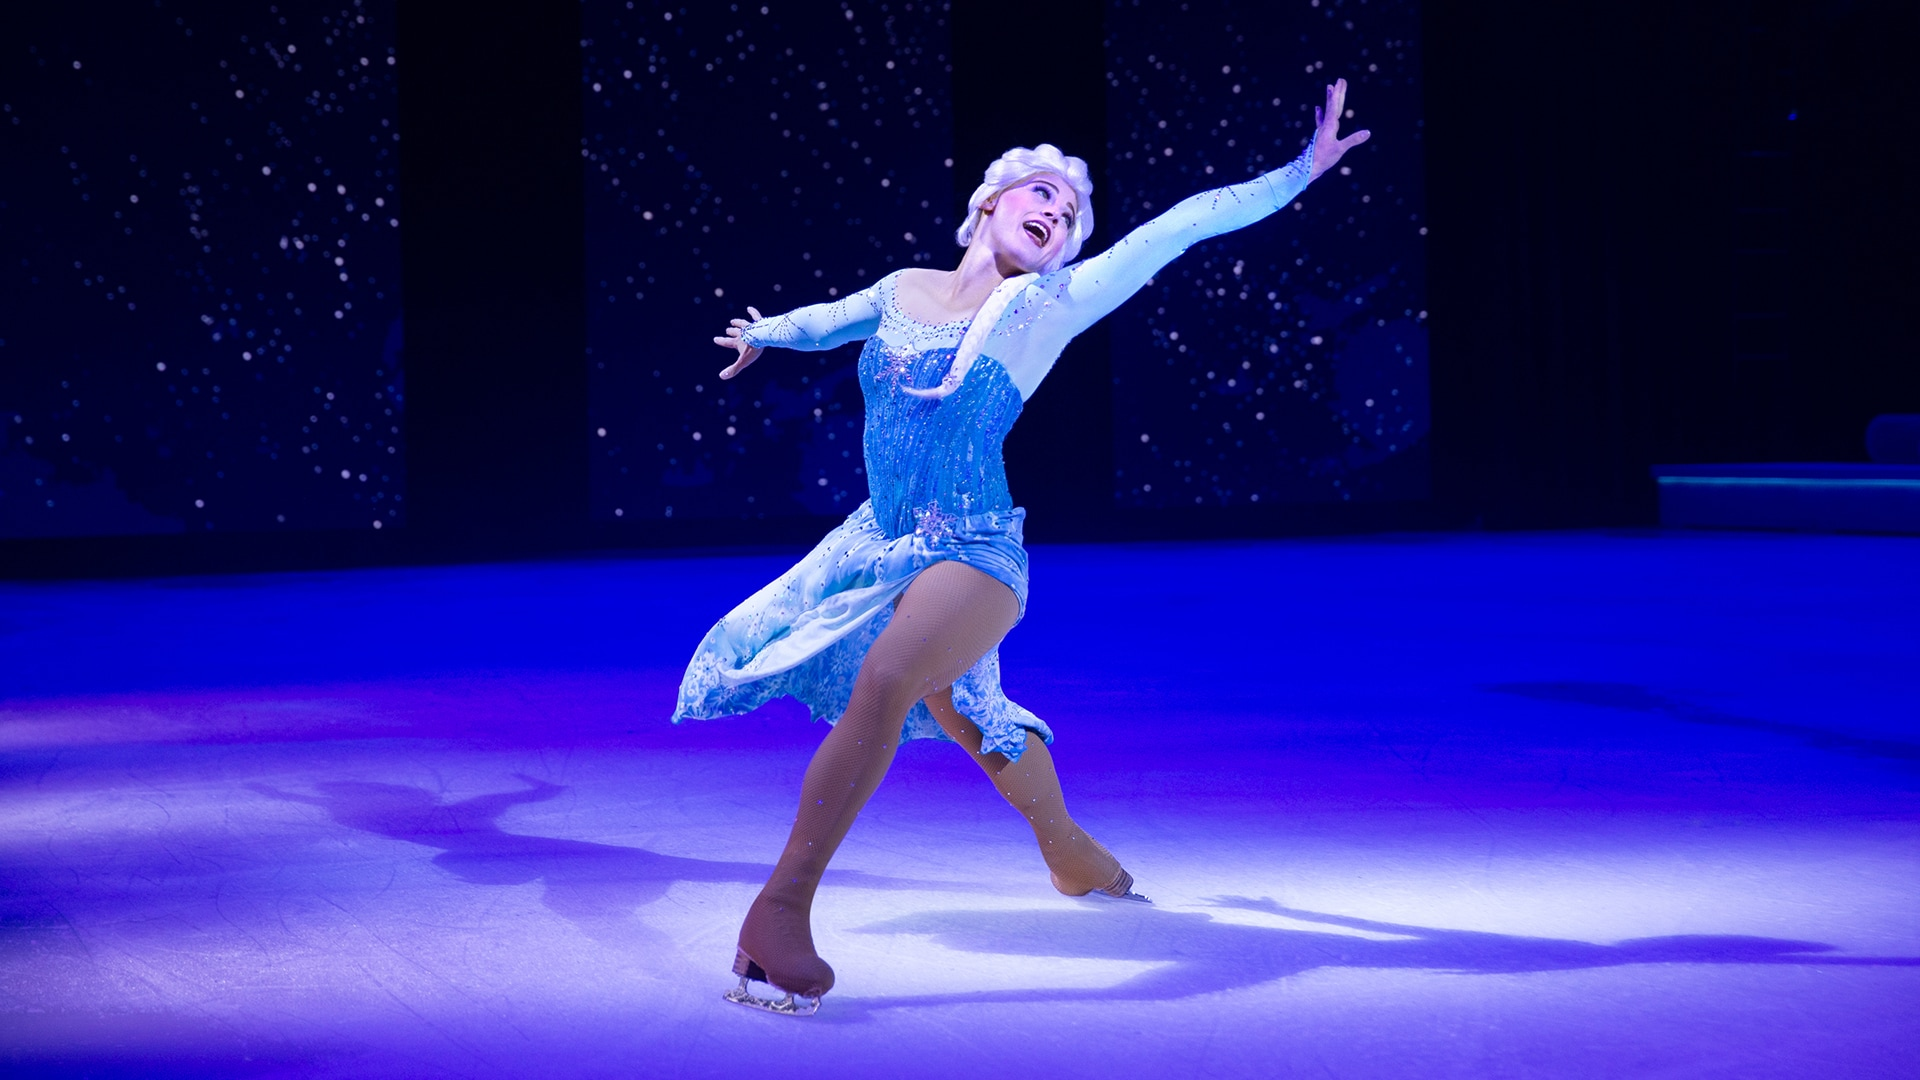 Elsa on a spotlight while singing and dancing on ice with her arms spread to the sides.